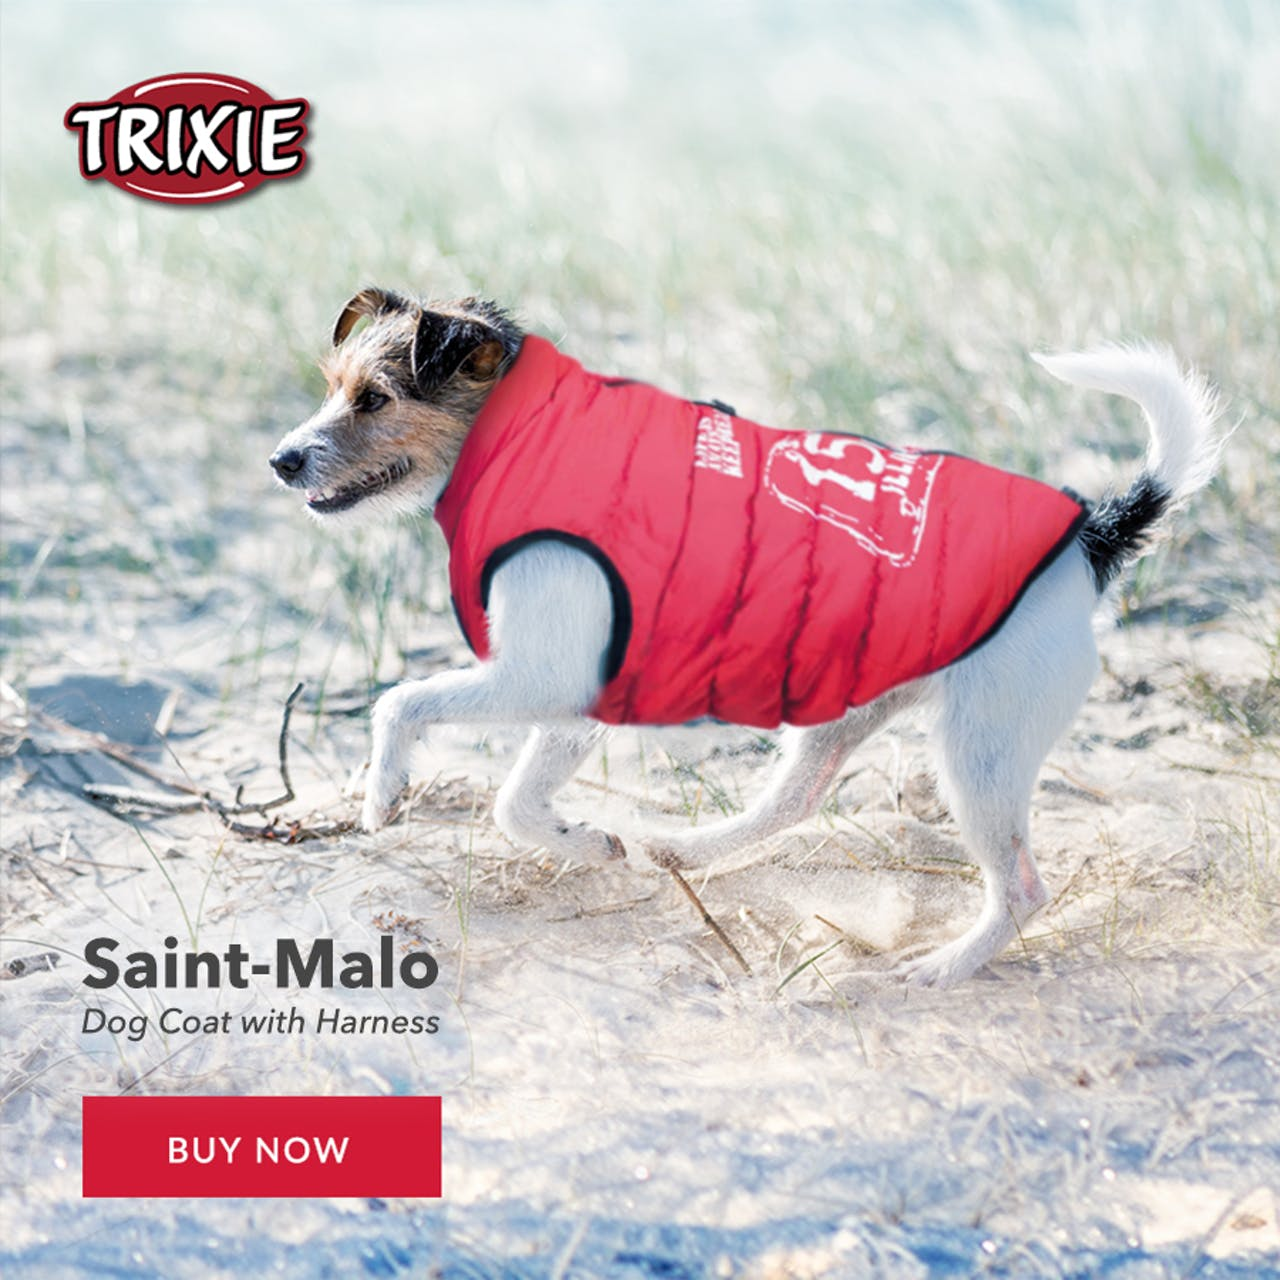 Trixie Dog Coats